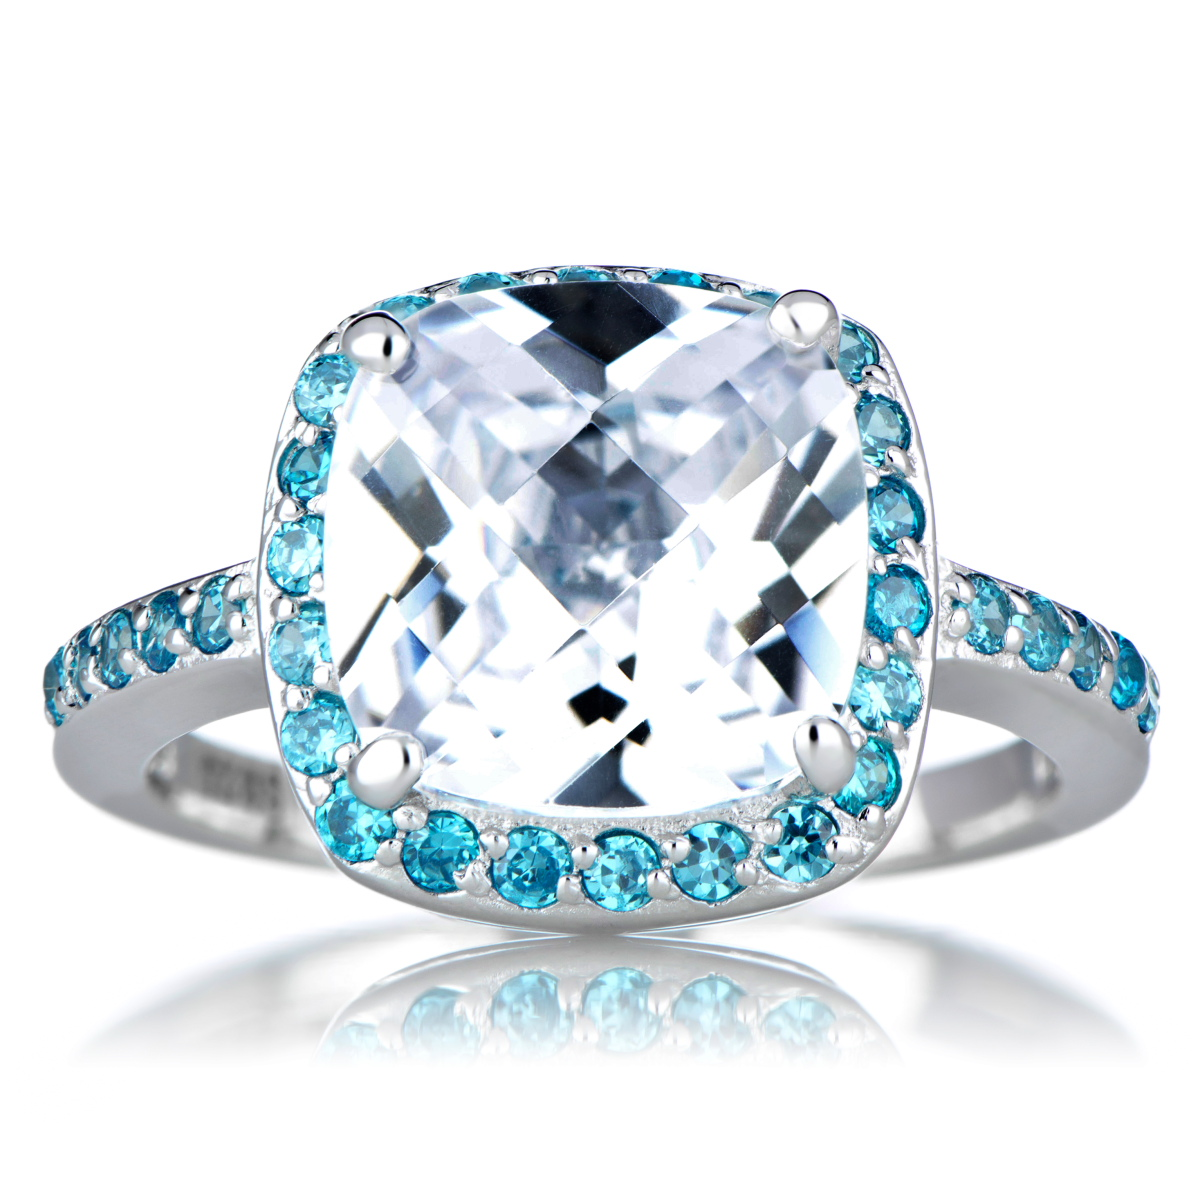 Cushion Cut Engagement Ring Roll Off Image To Close Zoom Window